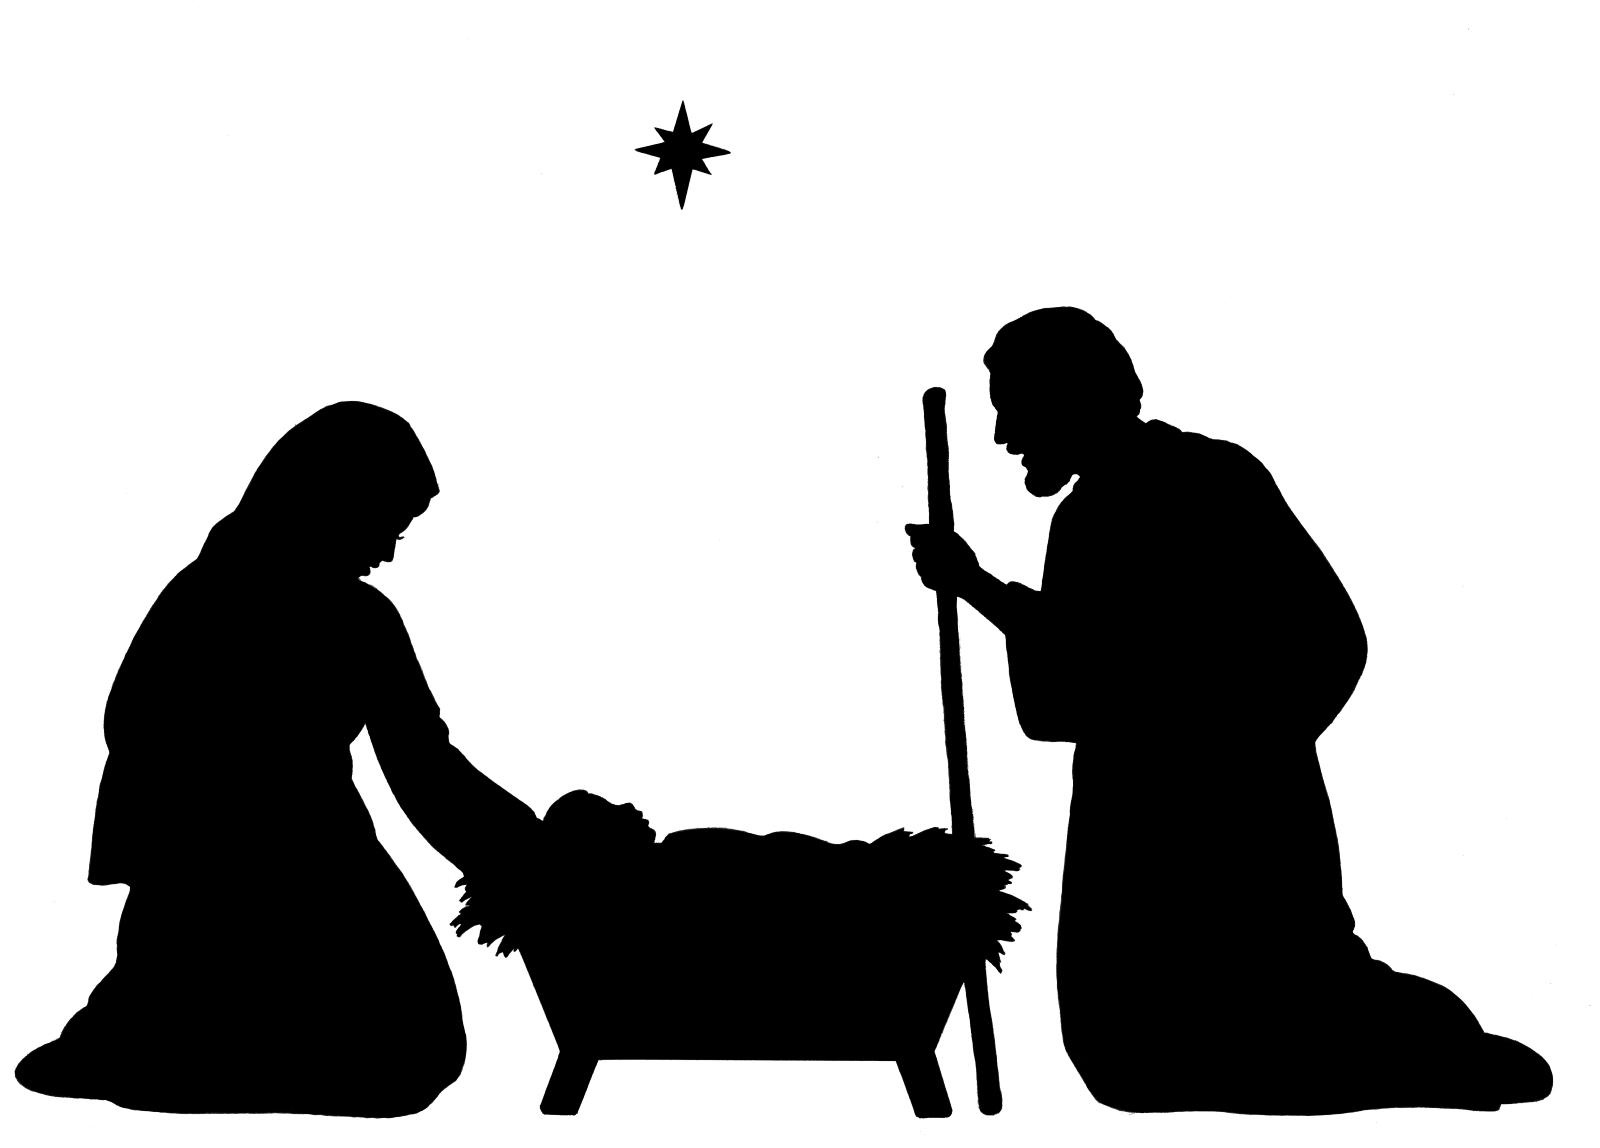 Free Nativity Clipart Silhouette | Free Download Best Free Nativity - Free Printable Nativity Silhouette